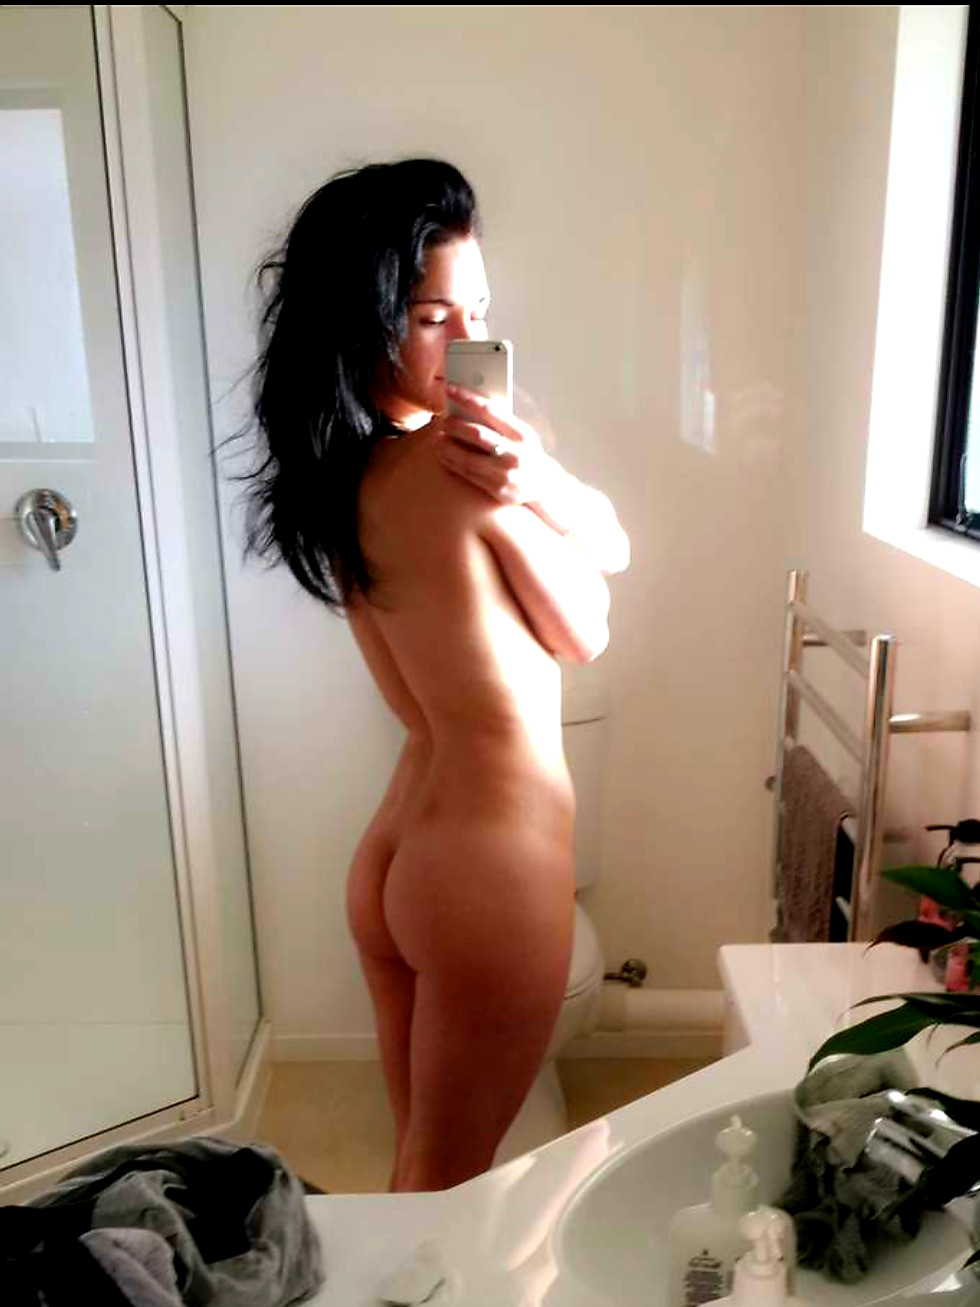 Hot mirror pic topless milf